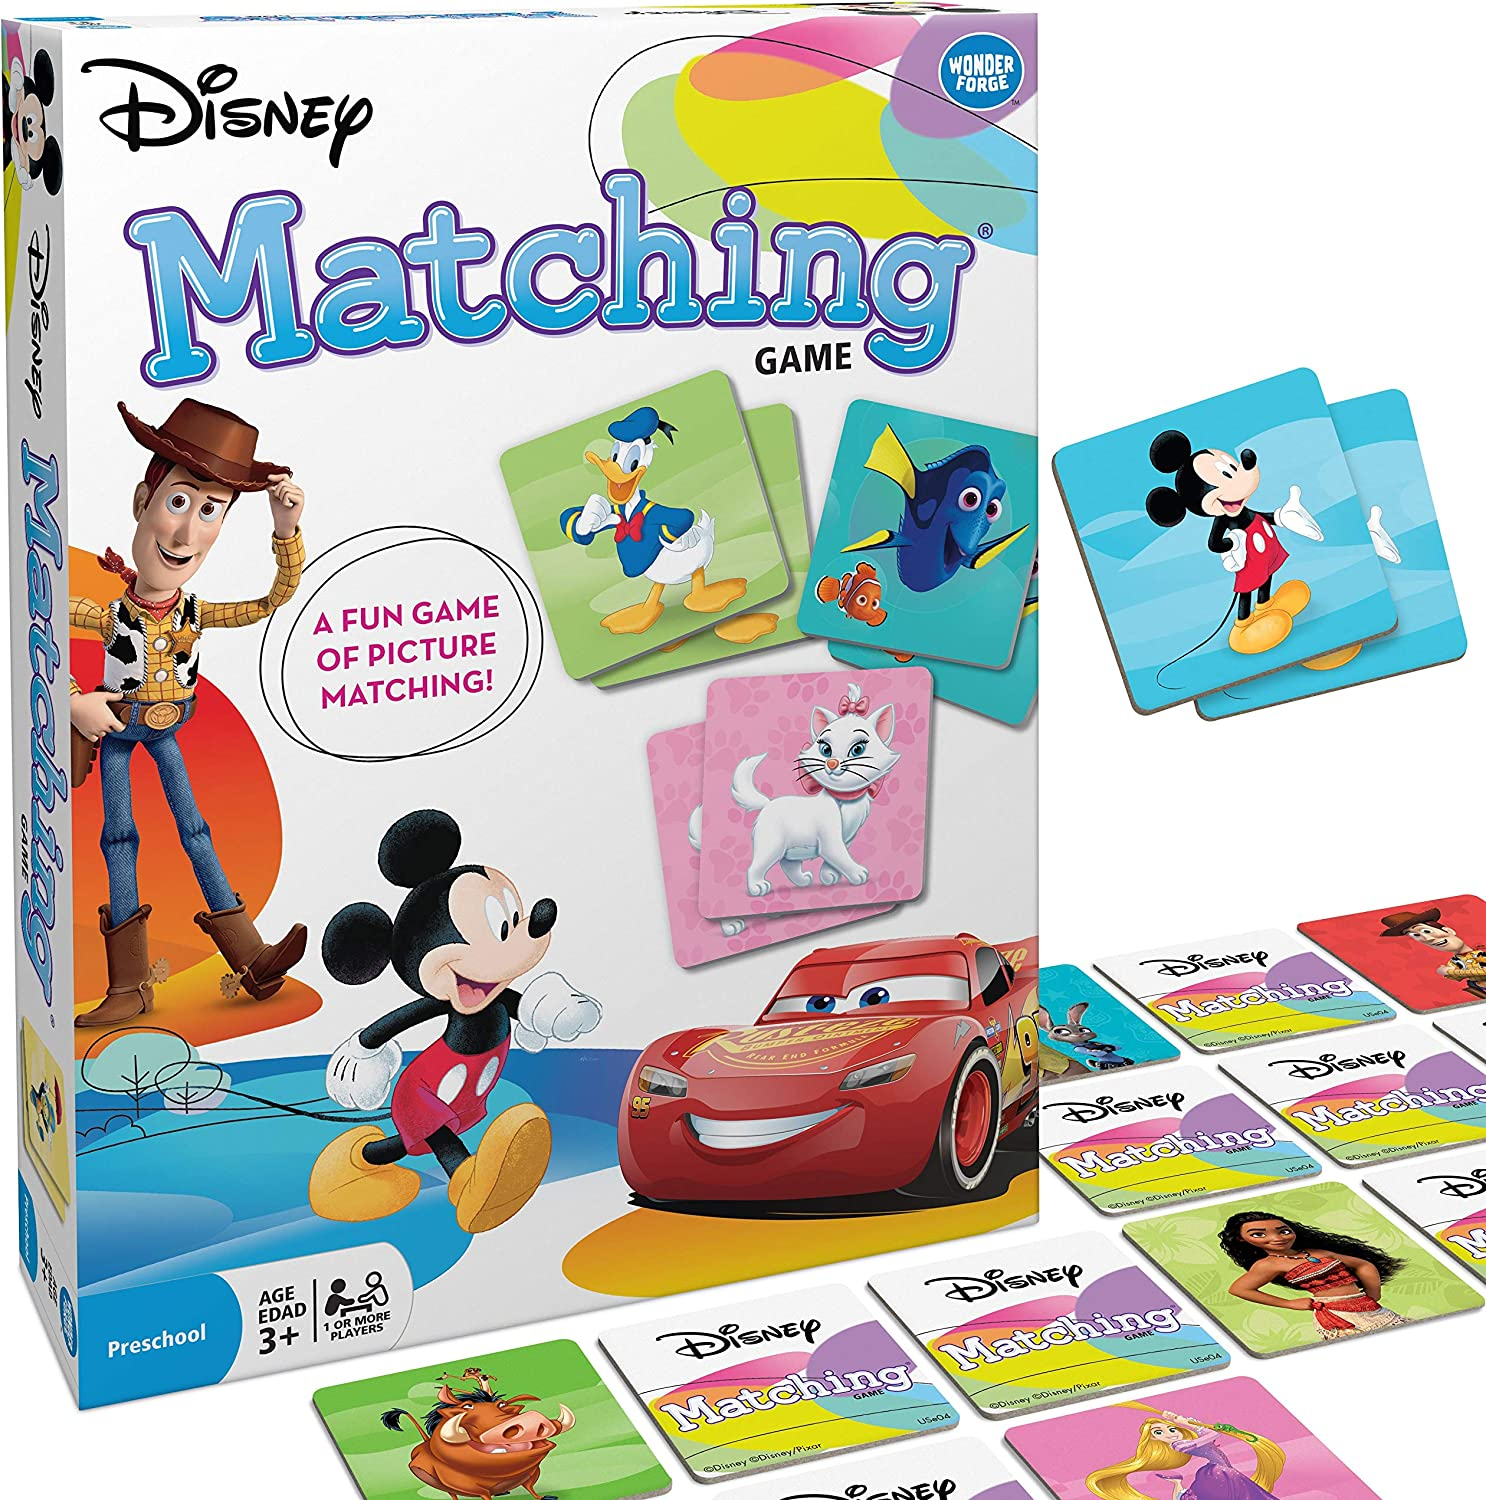 Disney matching game dyslexia board game